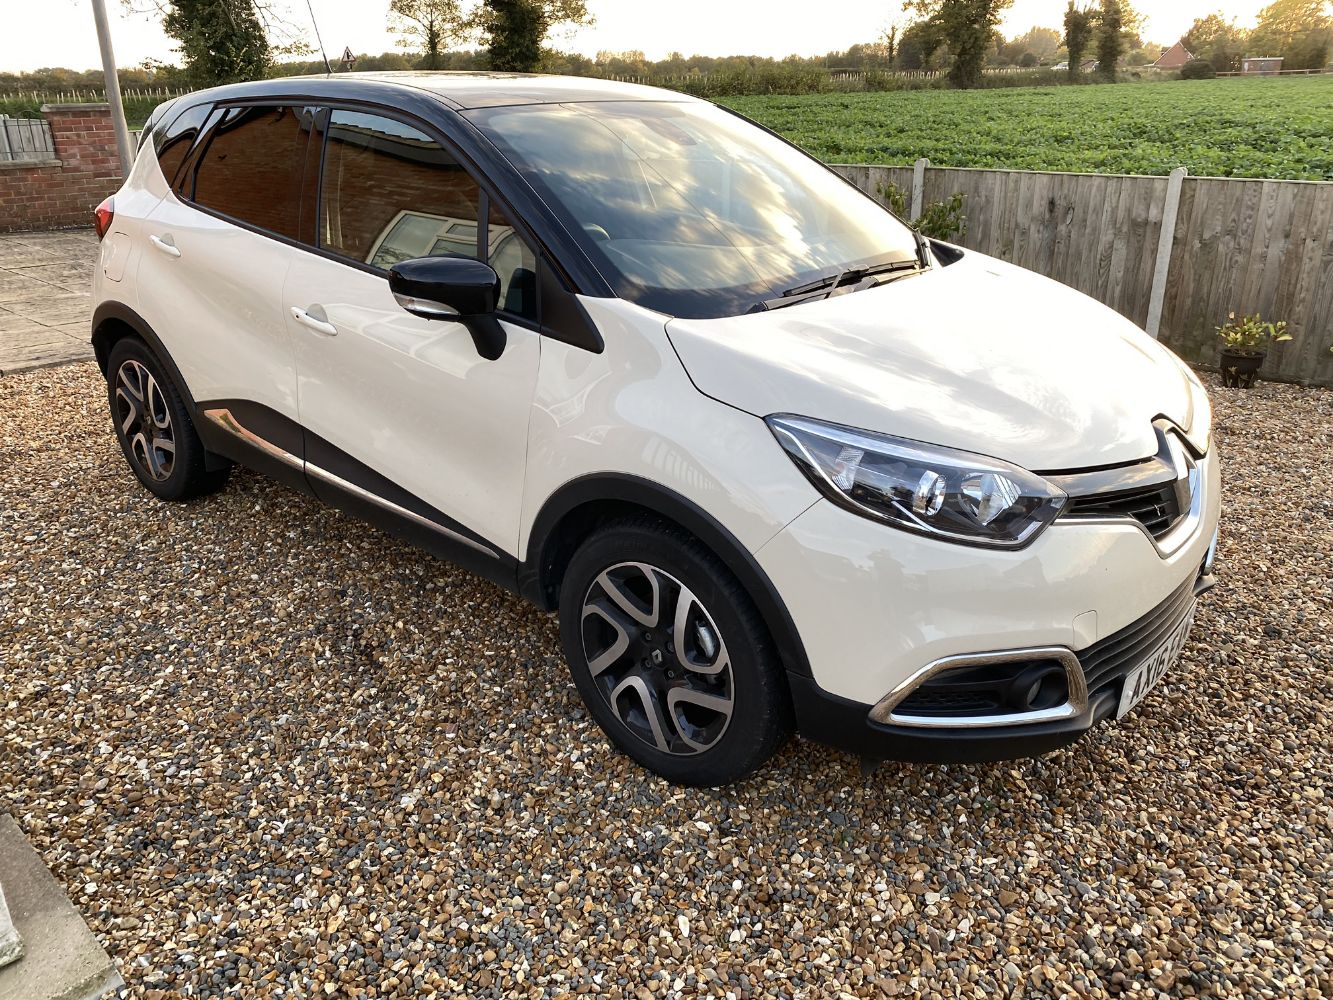 *ENDING NOW* - AUCTION INC 2 X CARS FROM THE EXECUTOR INC 2016 RENAULT CAPTUR 8k MILES, SAFE DEPOSIT LOTS, LUXURY & ANTIQUE JEWELLERY +  WATCHES